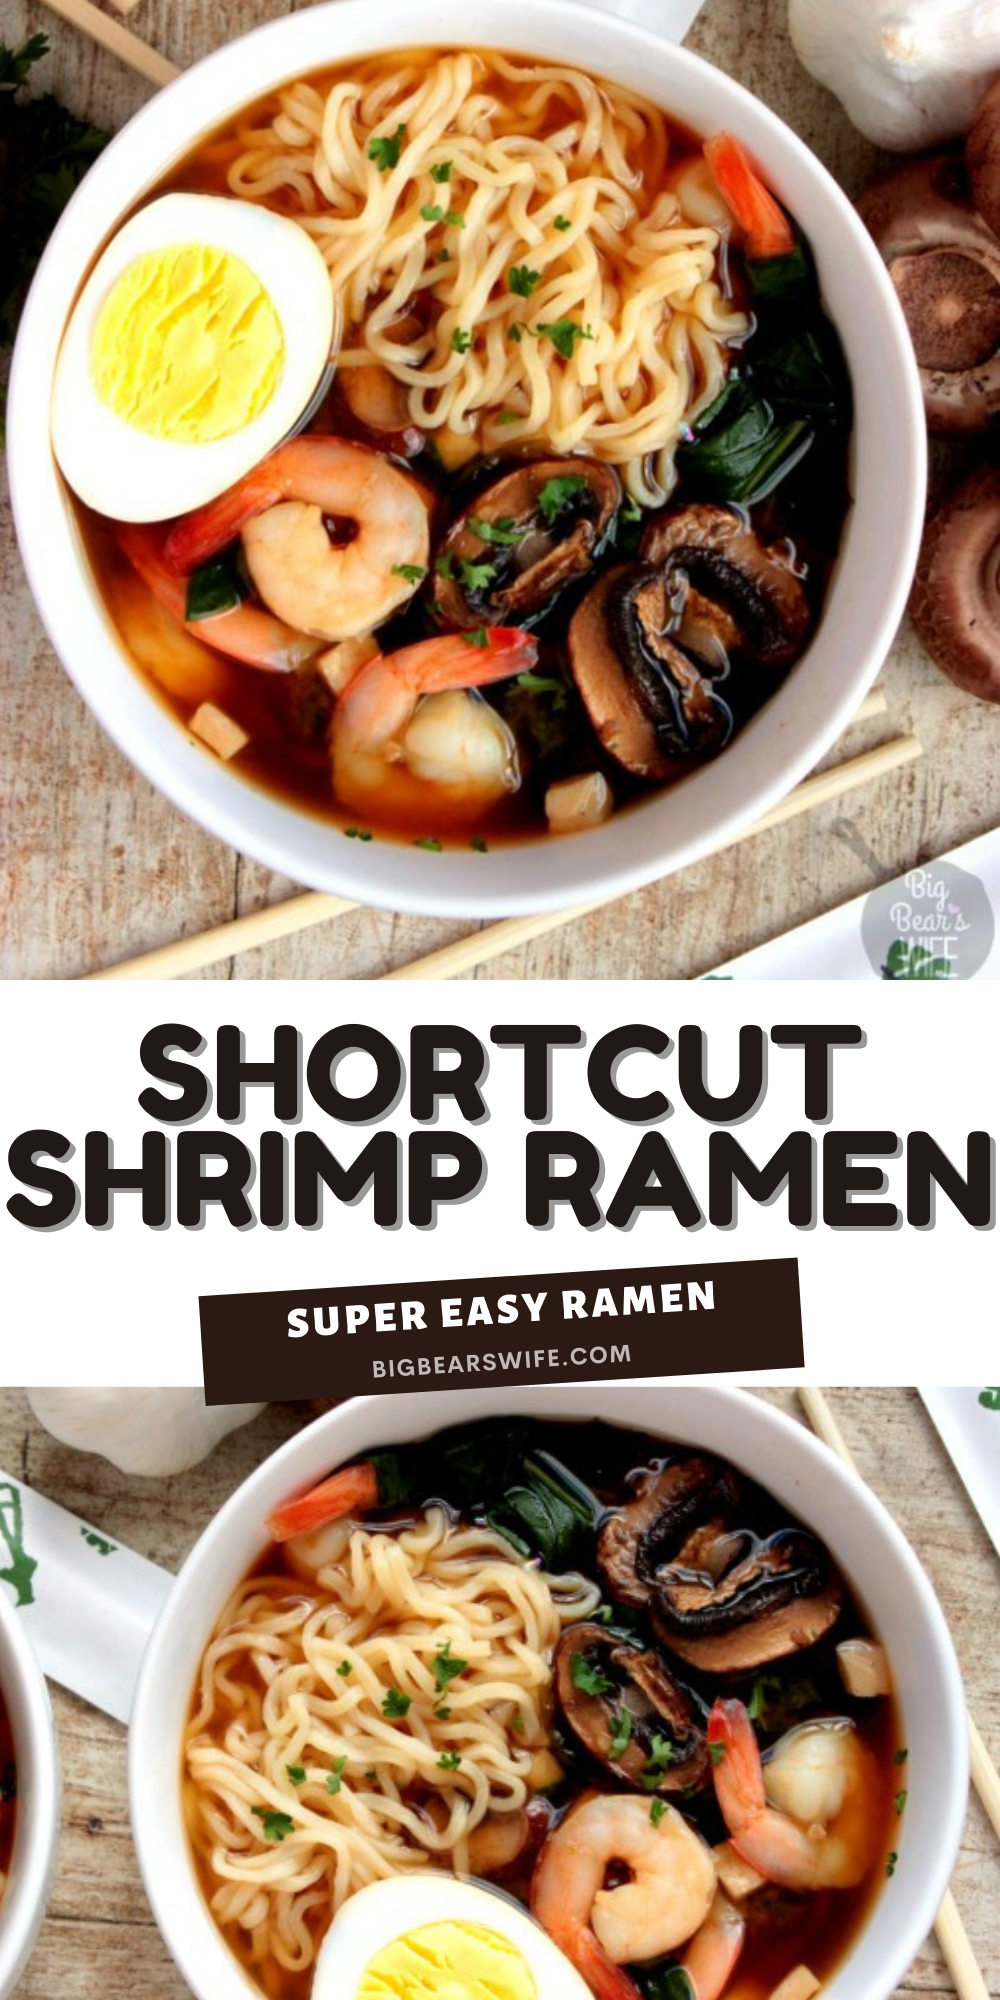 This Shortcut Shrimp Ramen is my favorite way to recreate ramen at home! The flavor is so good and in about 30 minutes you'll have delicious ramen.